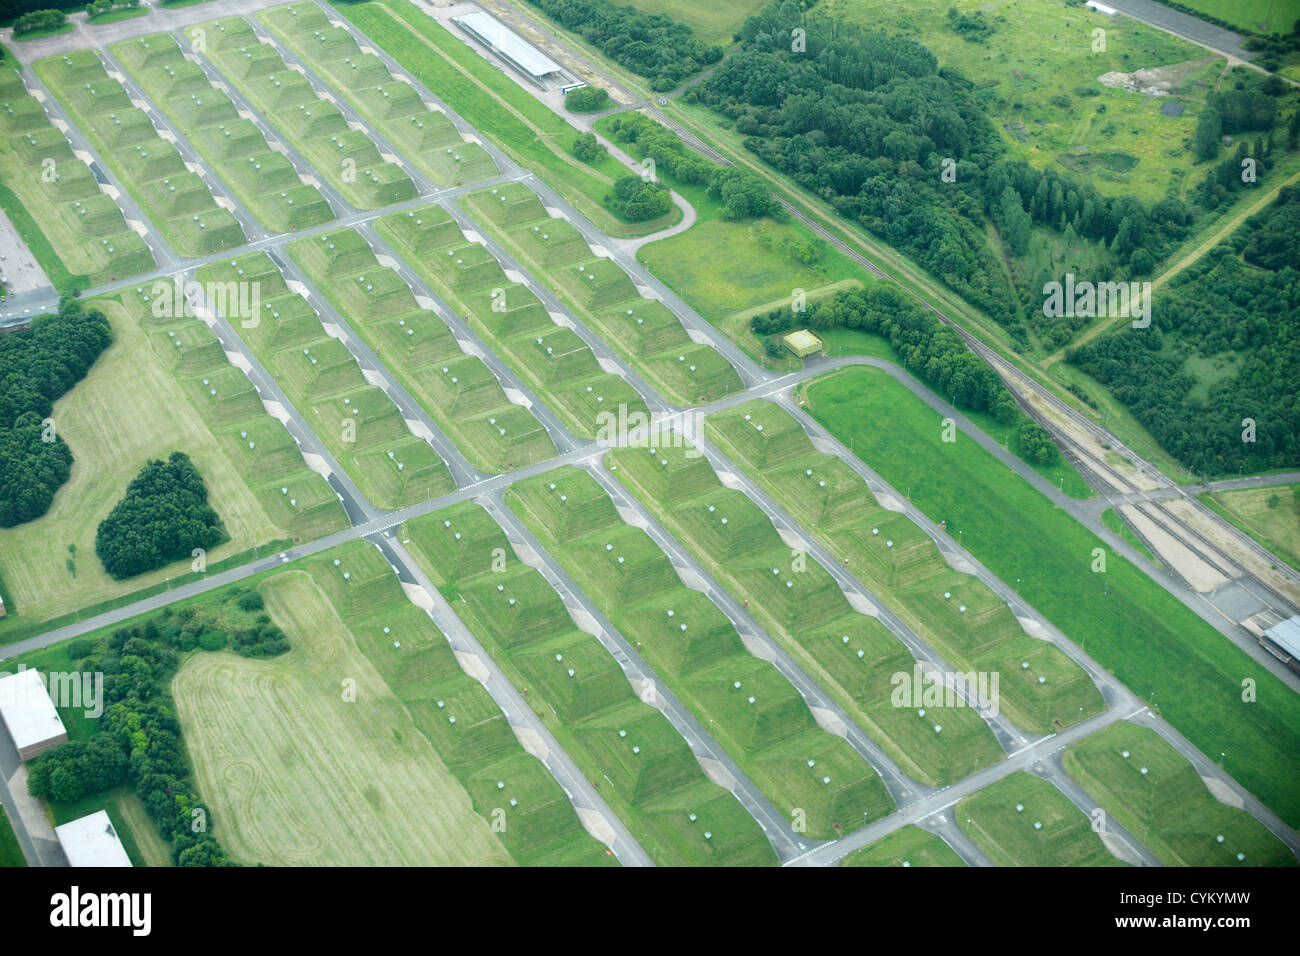 Aerial view of rural fields - Stock Image